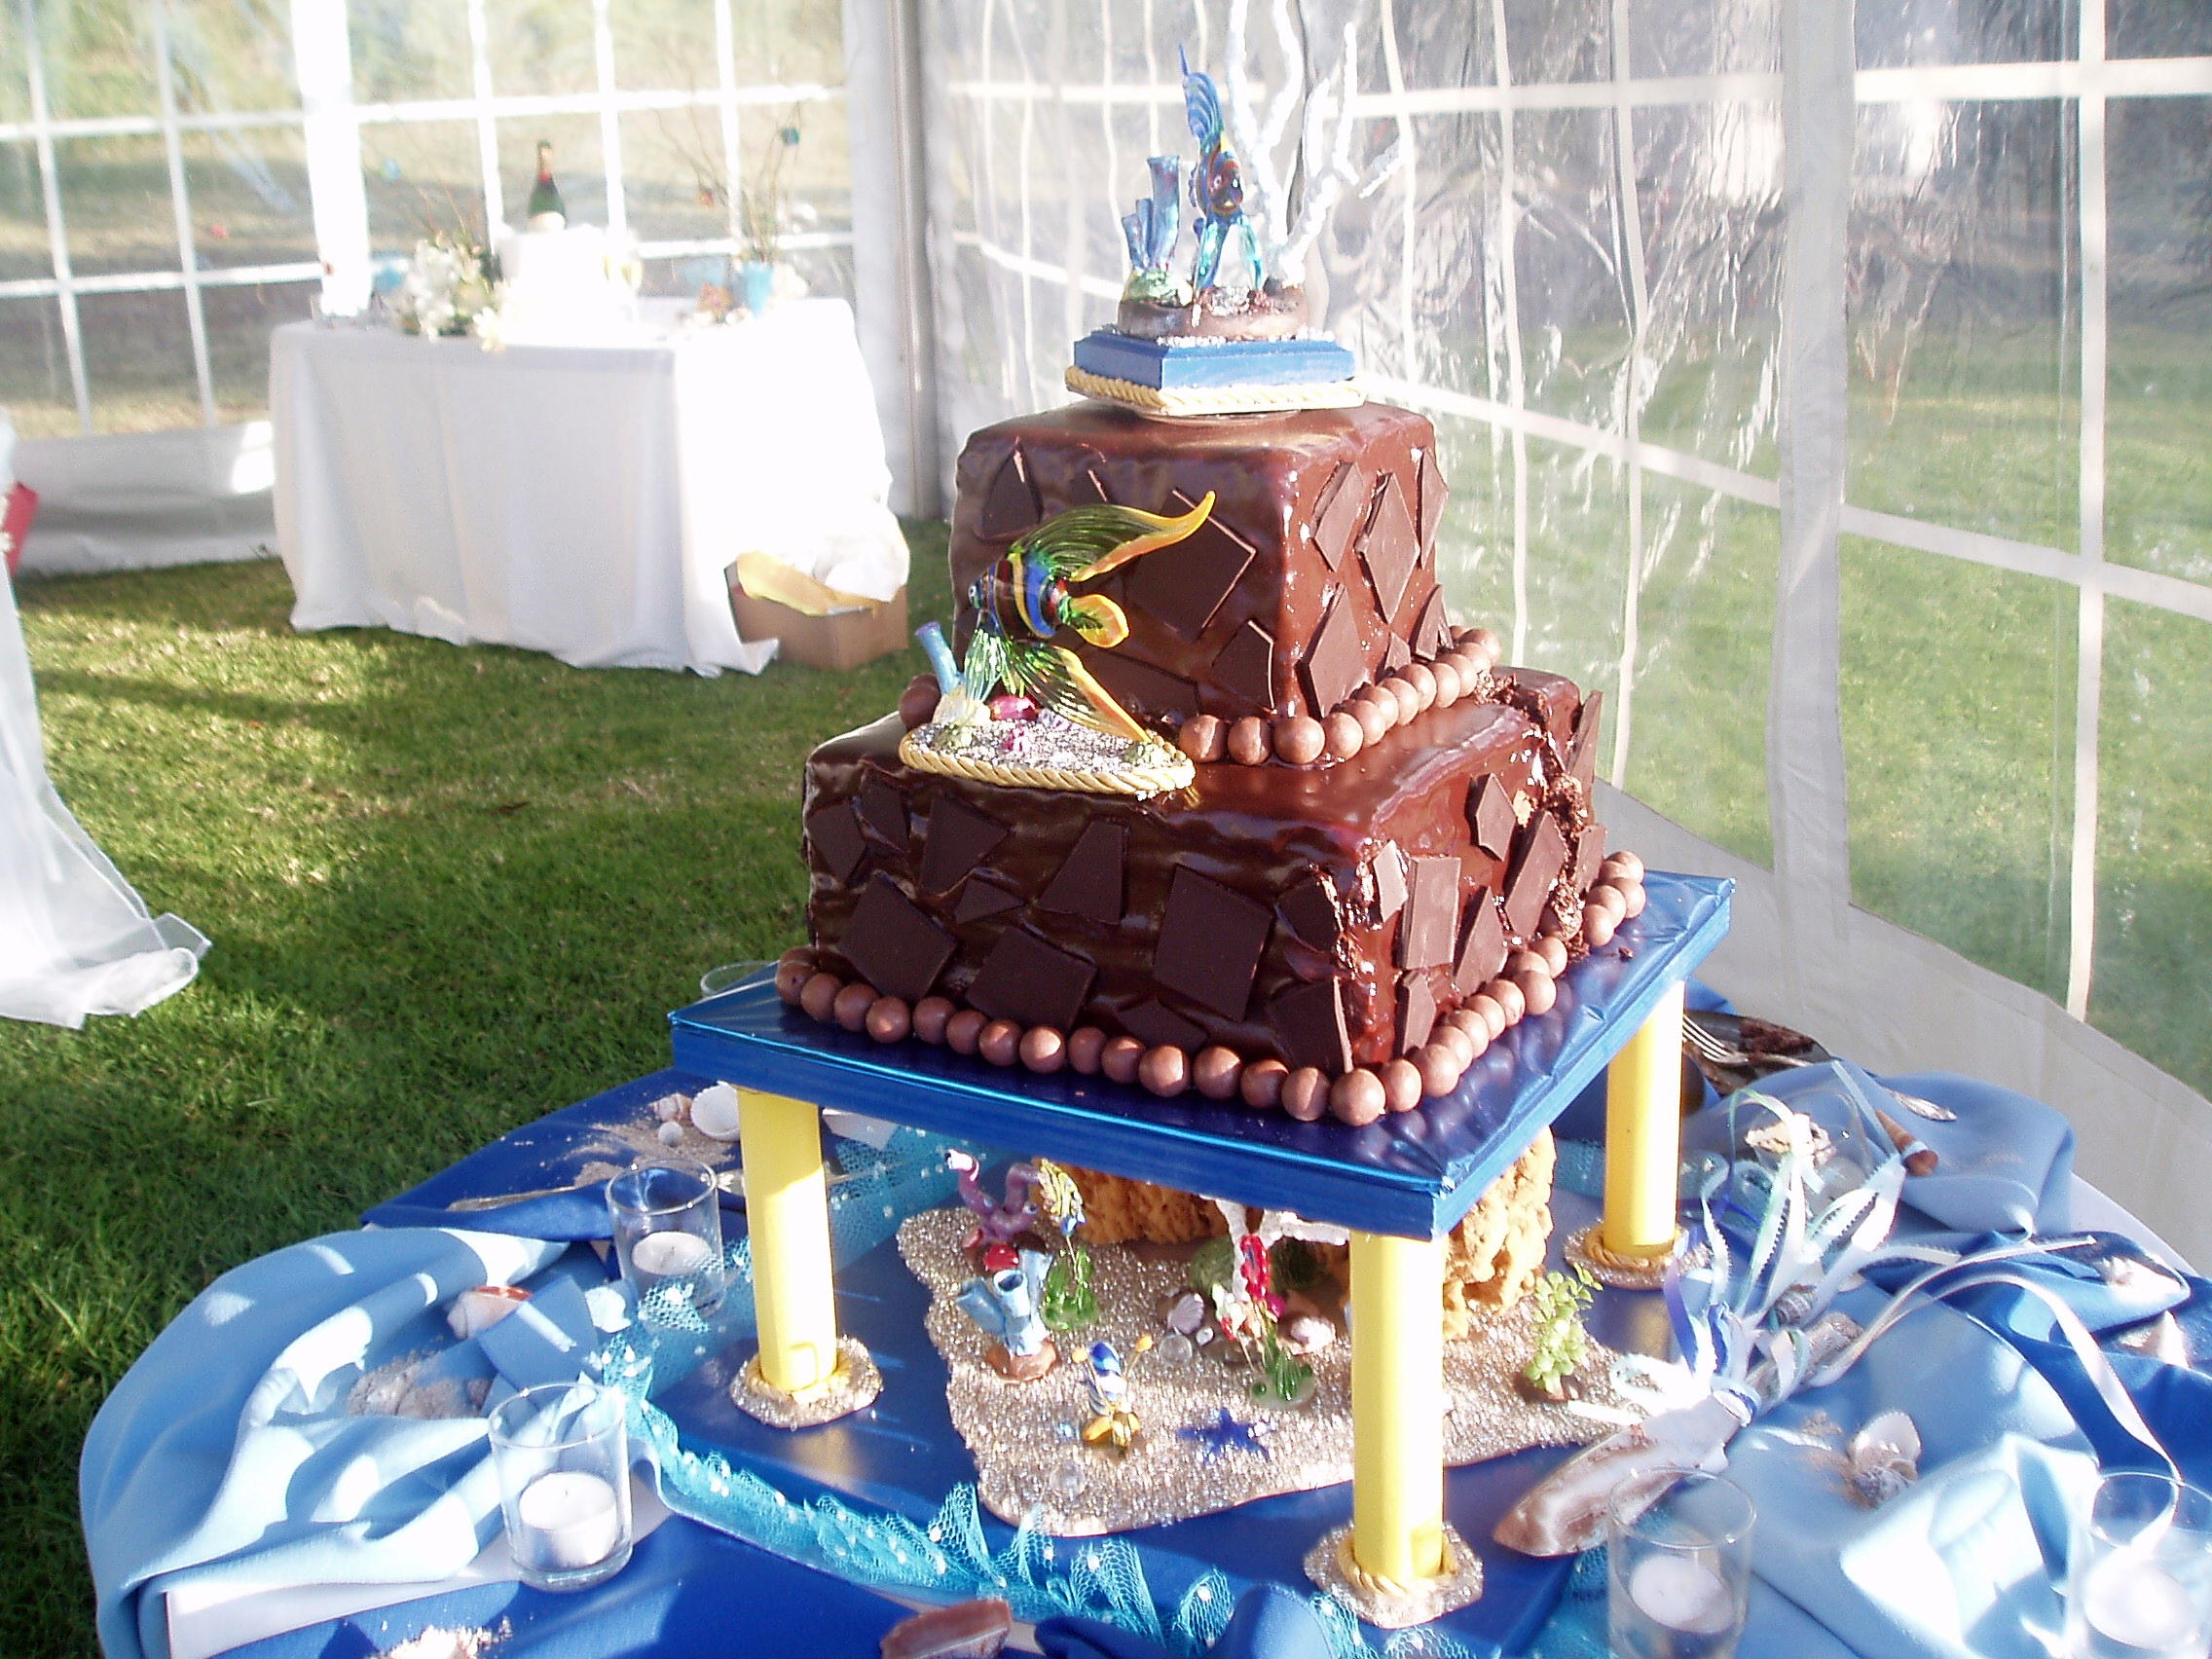 Deluxe cake for an adventurous couple!